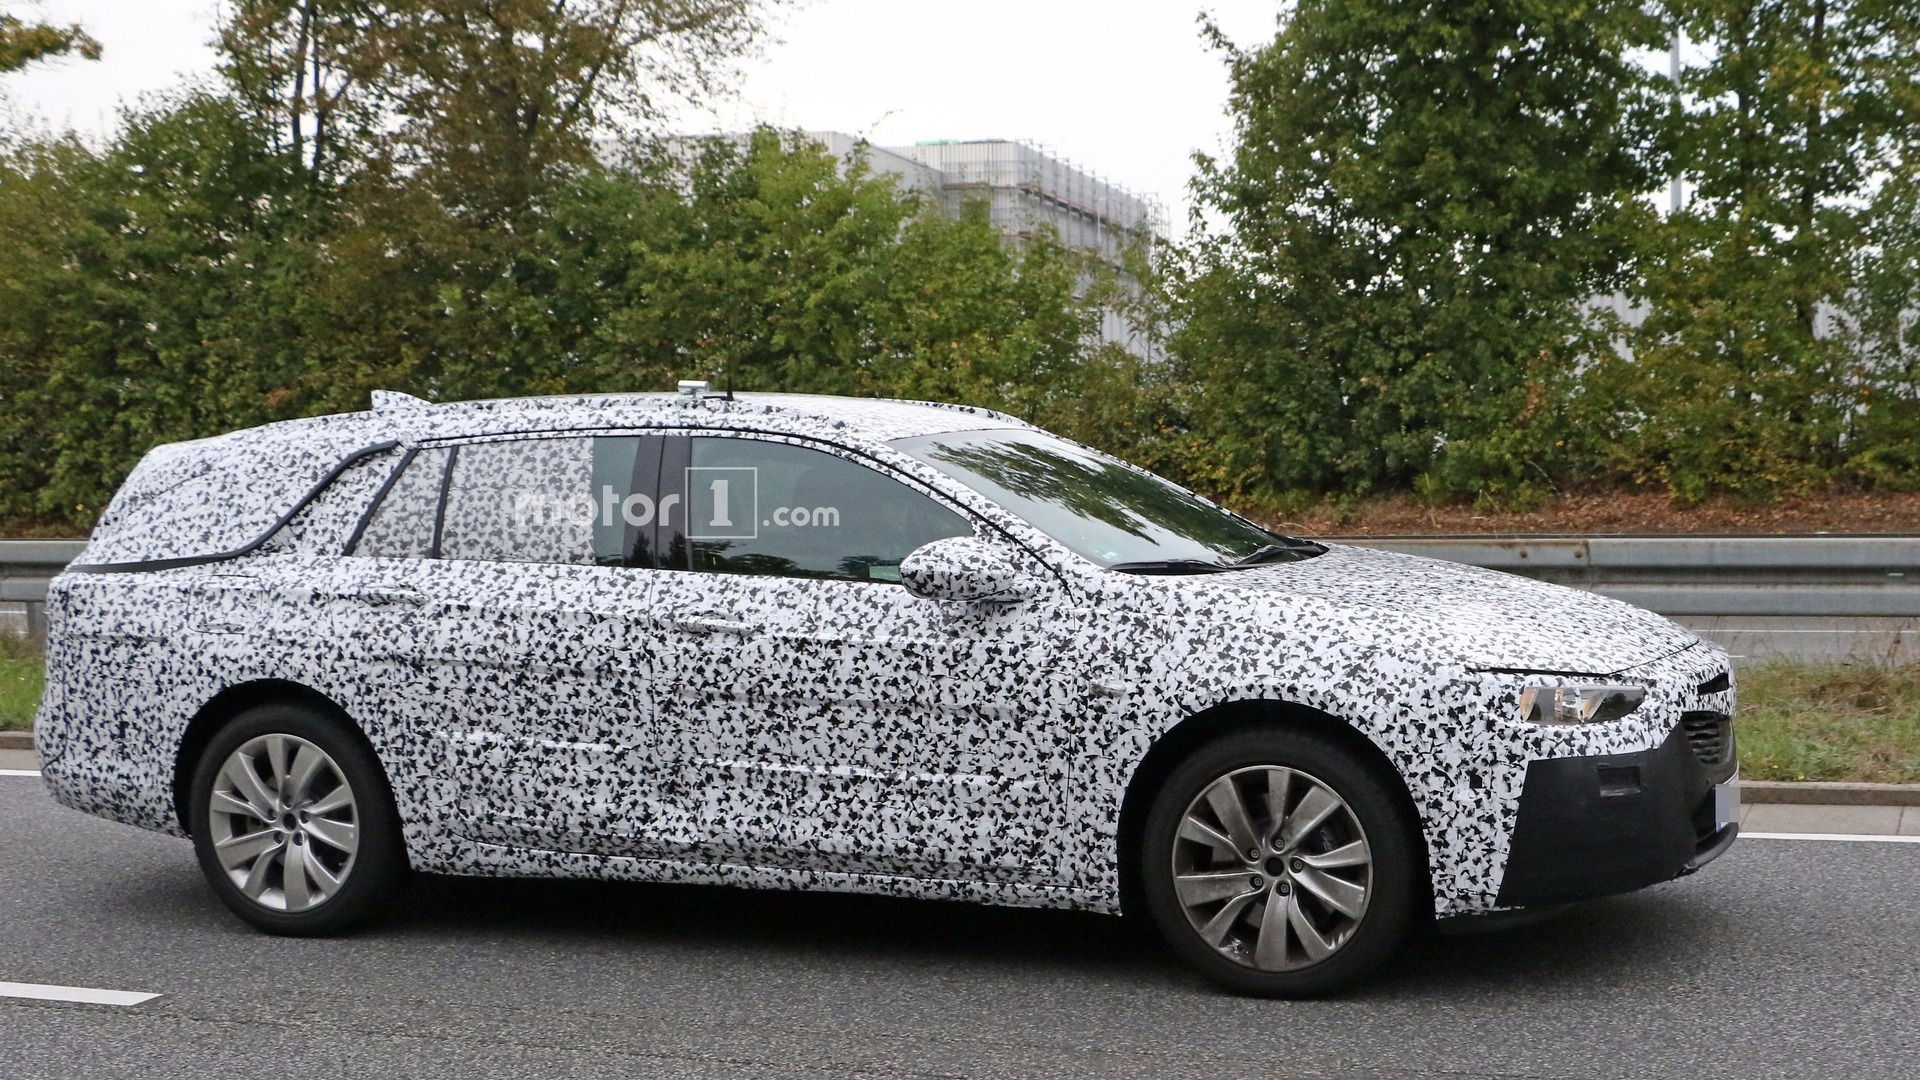 2017 opel insignia wagon spied exhibiting jump in size. Black Bedroom Furniture Sets. Home Design Ideas